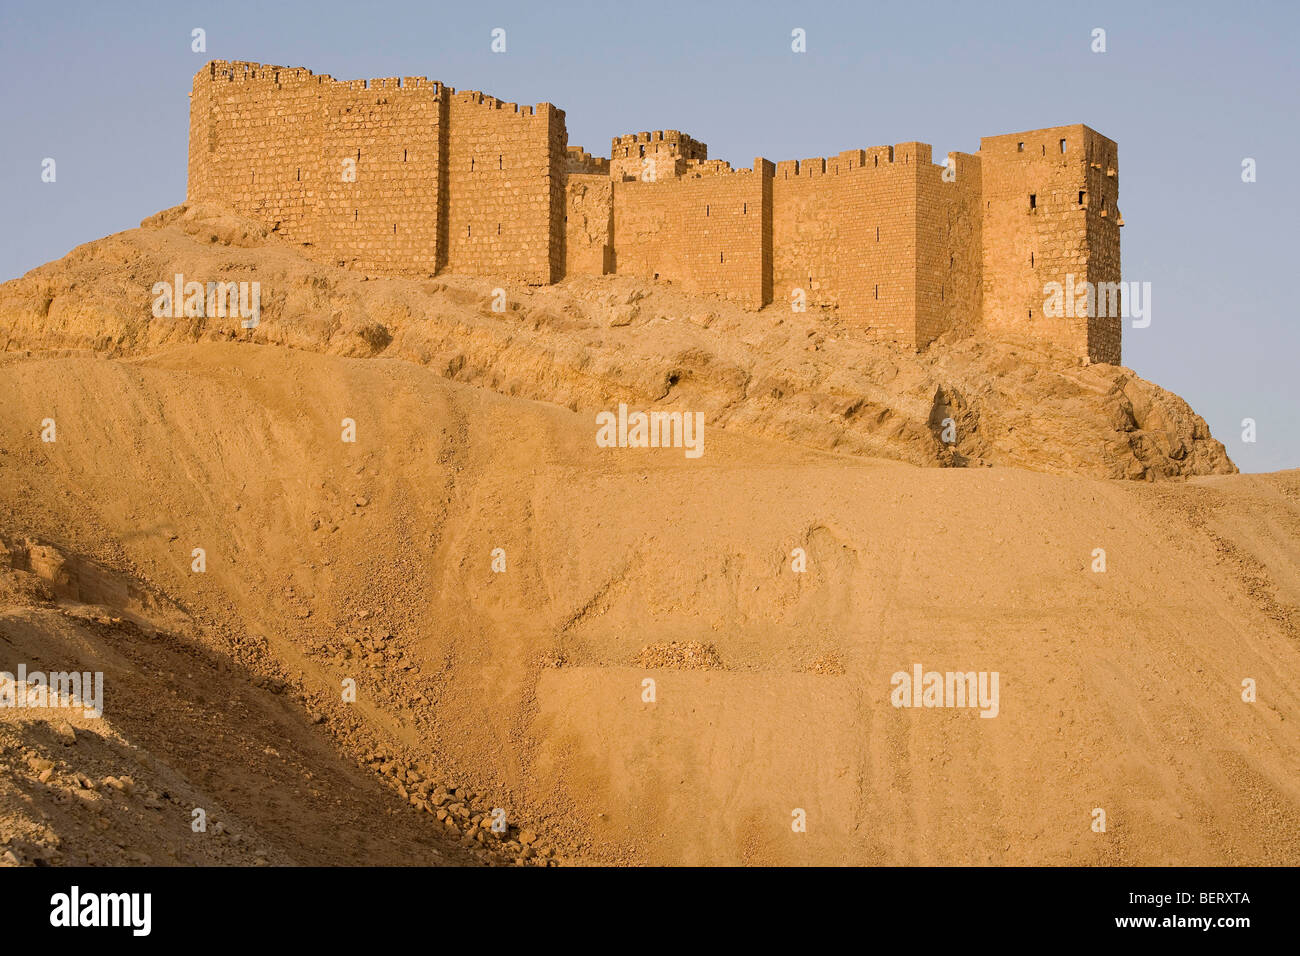 Old castle in Palmyra, Syria, Middle East, Asia - Stock Image